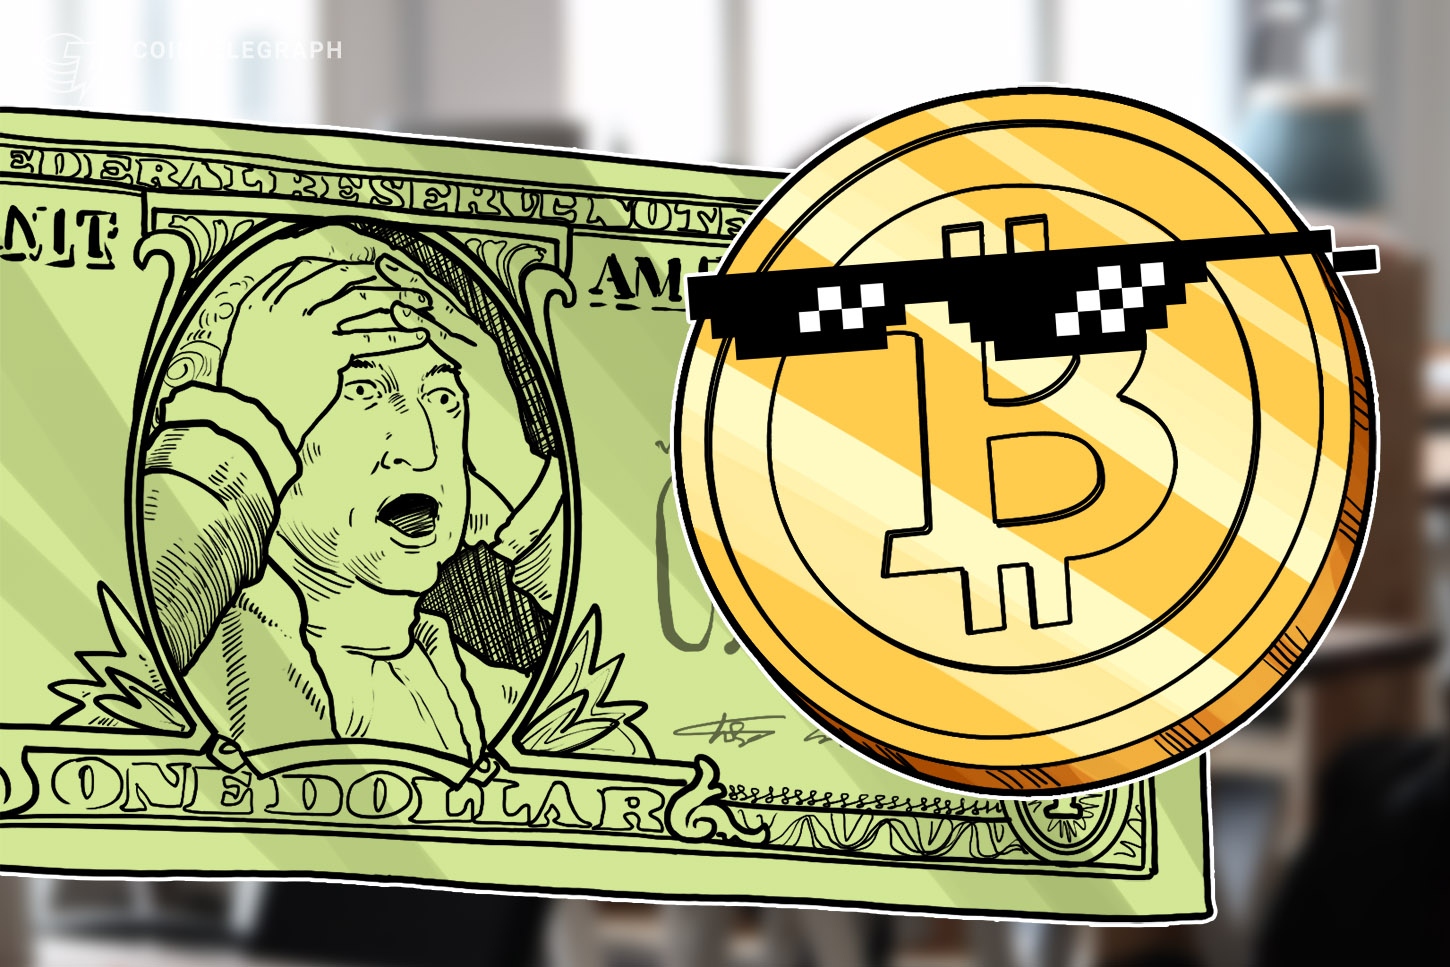 'Bitcoin fixes this' — US Infrastructure Bill would add $250B to US debt mountain